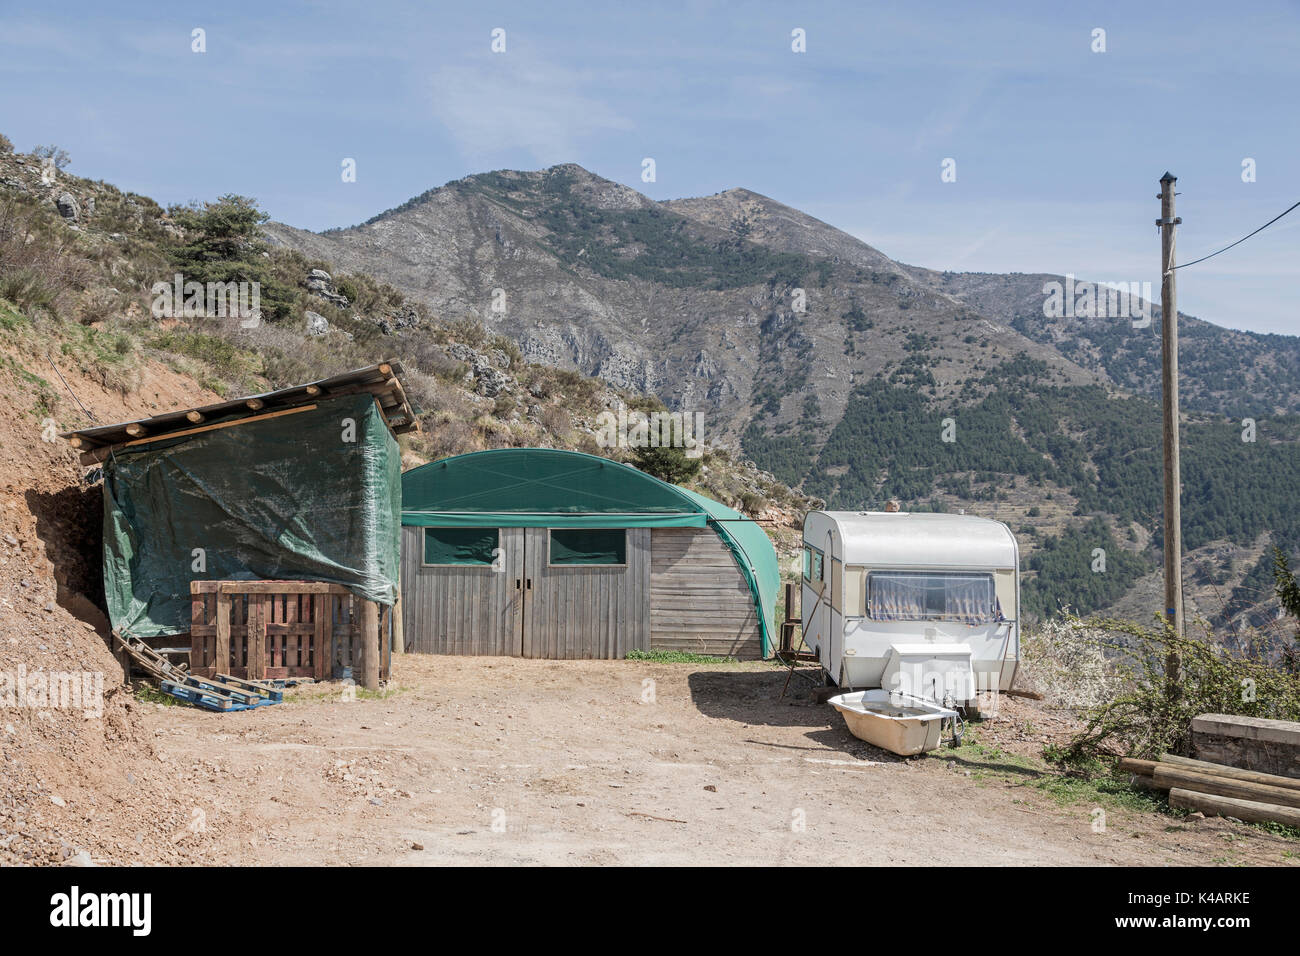 More Expedient Sheepfold And Mobile Sheperds Hut - Stock Image